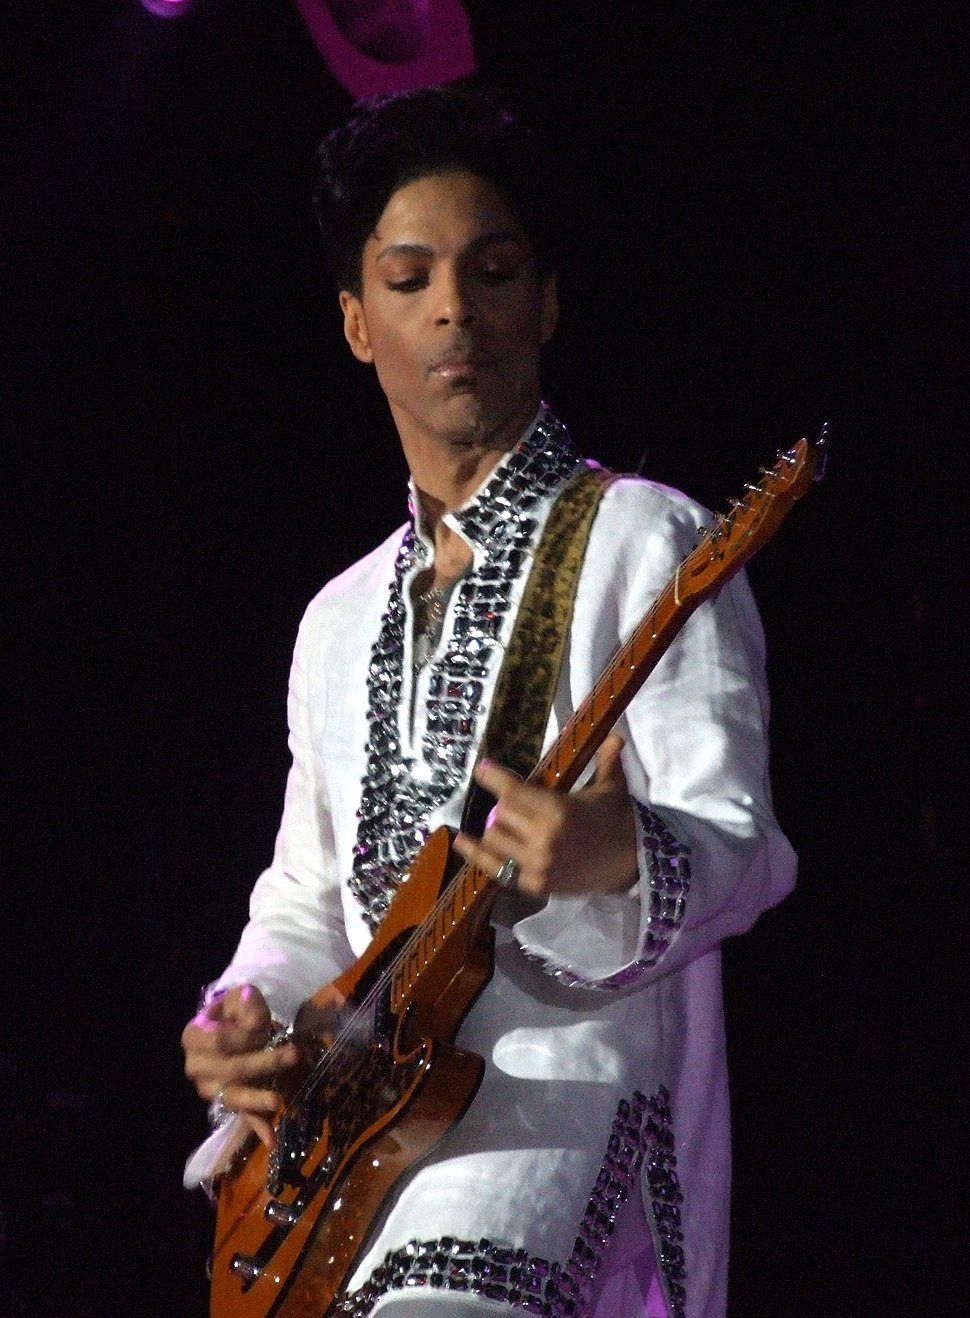 Prince at Coachella (cropped)